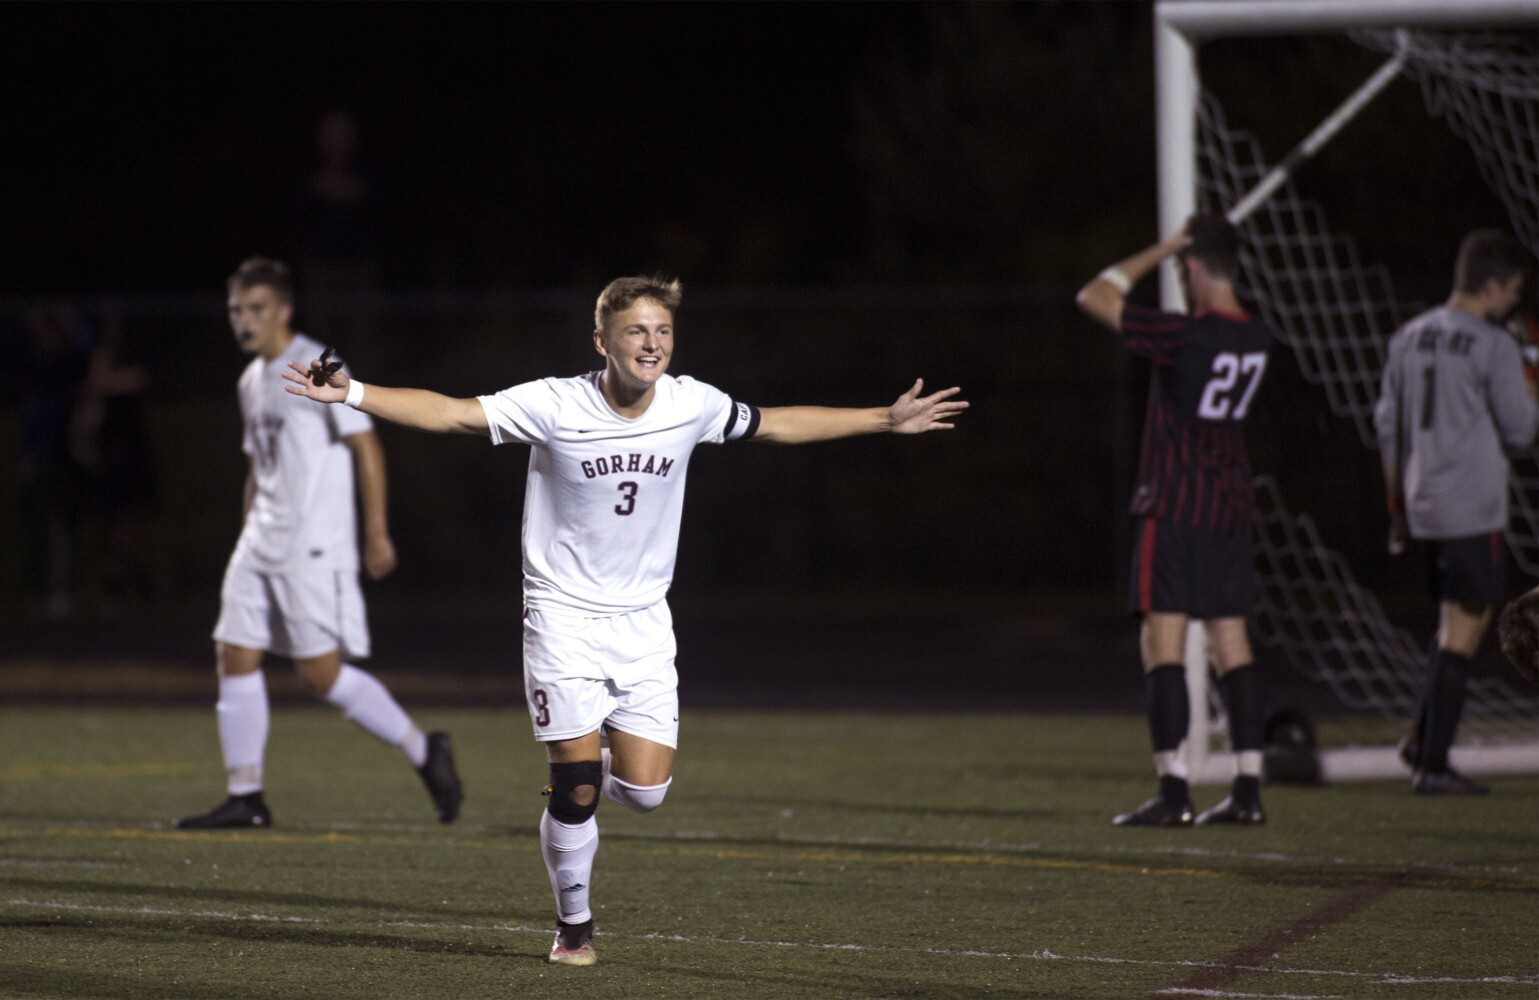 Boys' soccer: 10 teams to watch - Portland Press Herald